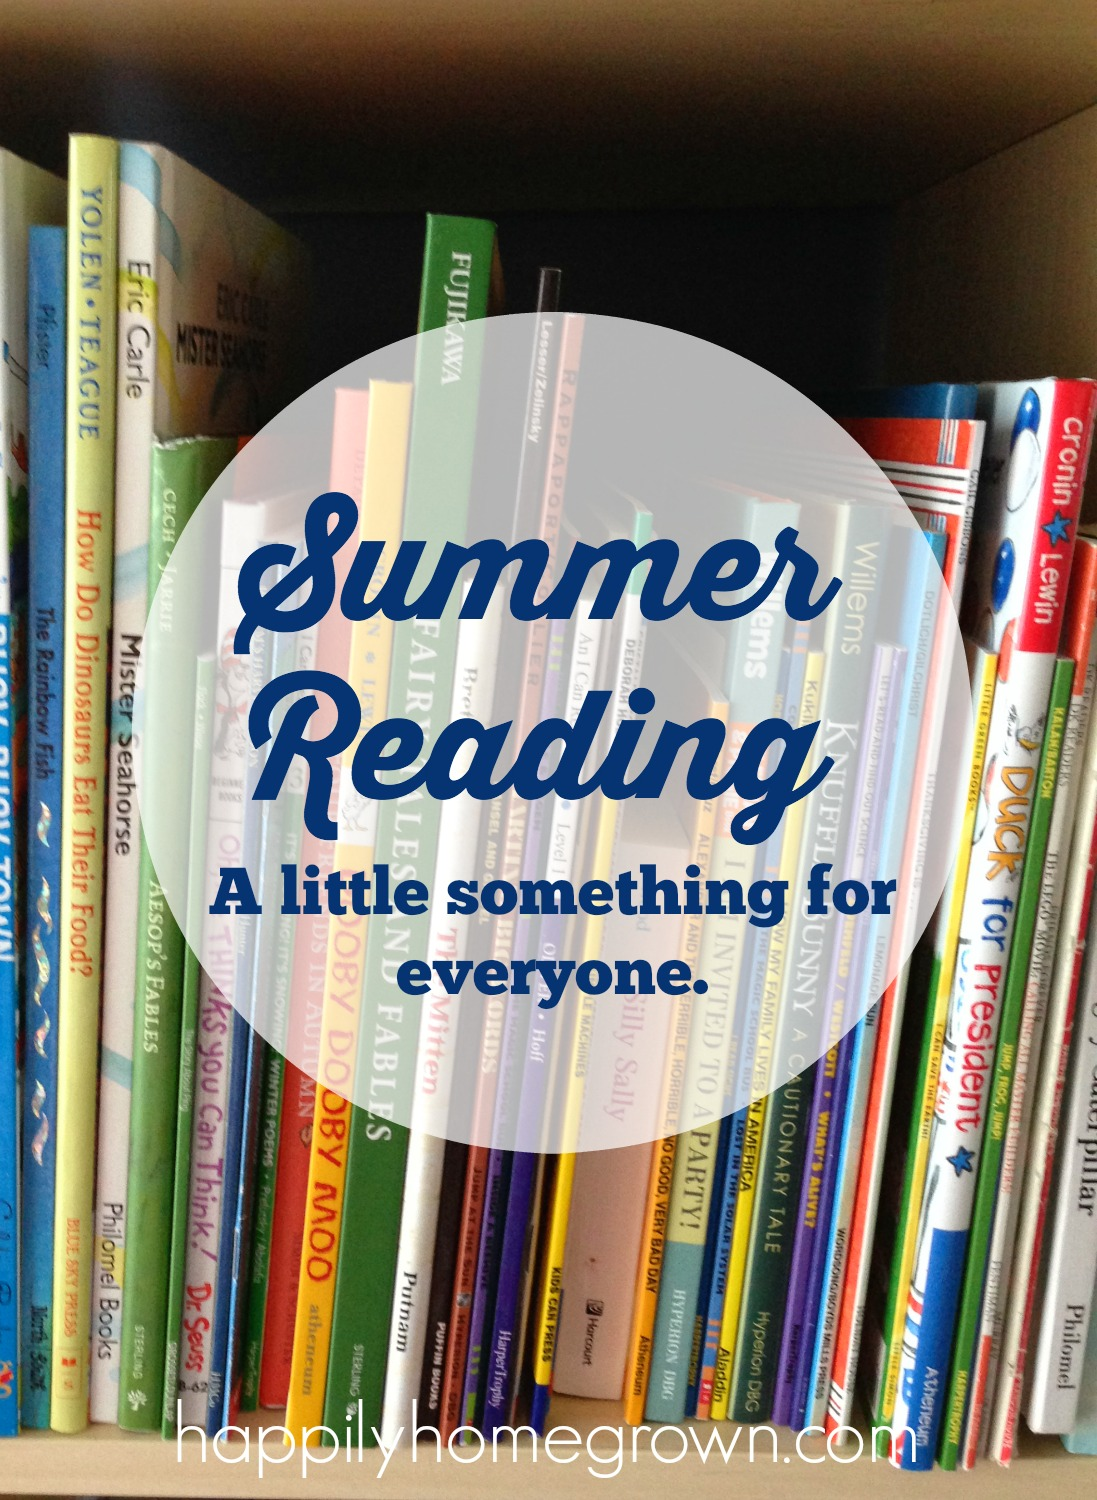 Summer reading is a great way to travel to new places, meet new people, and experience new things, all within the pages of a book.